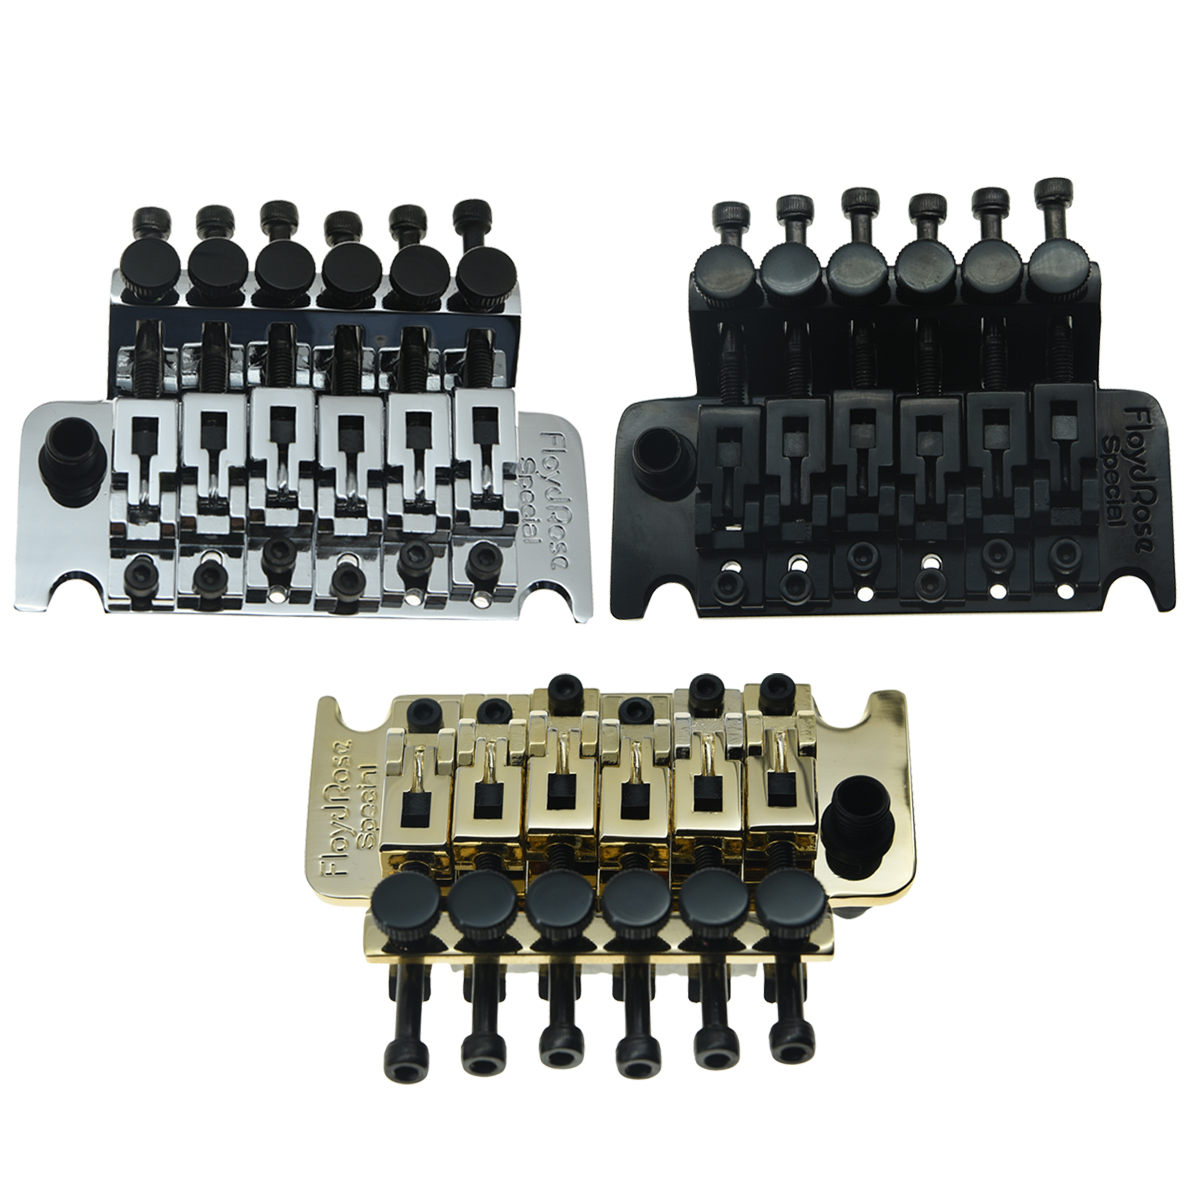 Dopro Genuine Floyd Rose Special Guitar Locking Tremolo Bridge System with R2 or R3 Nut Chrome/Black/Gold niko chrome floyd rose lic tremolo bridge double locking system free shipping wholesales